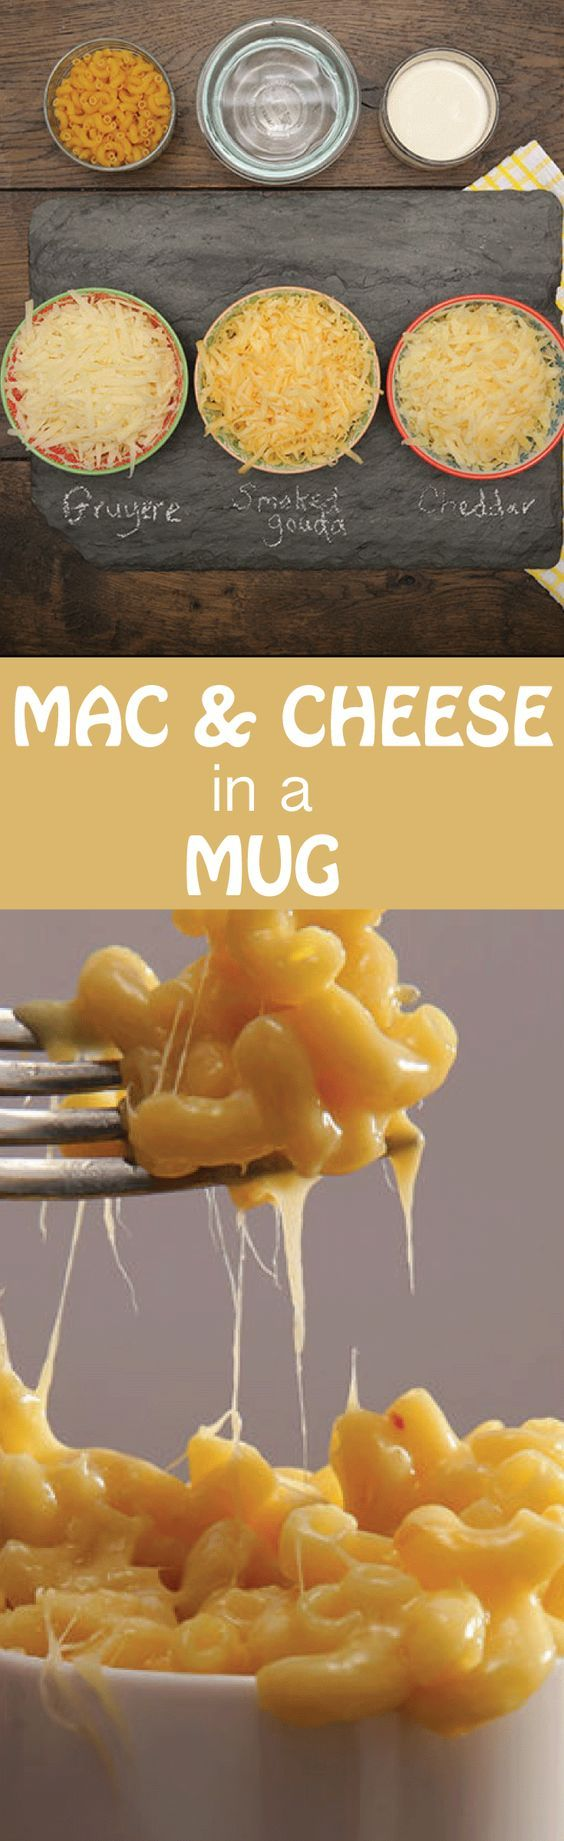 CheeseRank's Mug Mac and Cheese: This recipe is simple, but big on flavor. It's easy enough for kids to make, yet clever enough for adults looking to sneak mac and cheese around the office. Simply put, it's perfect.